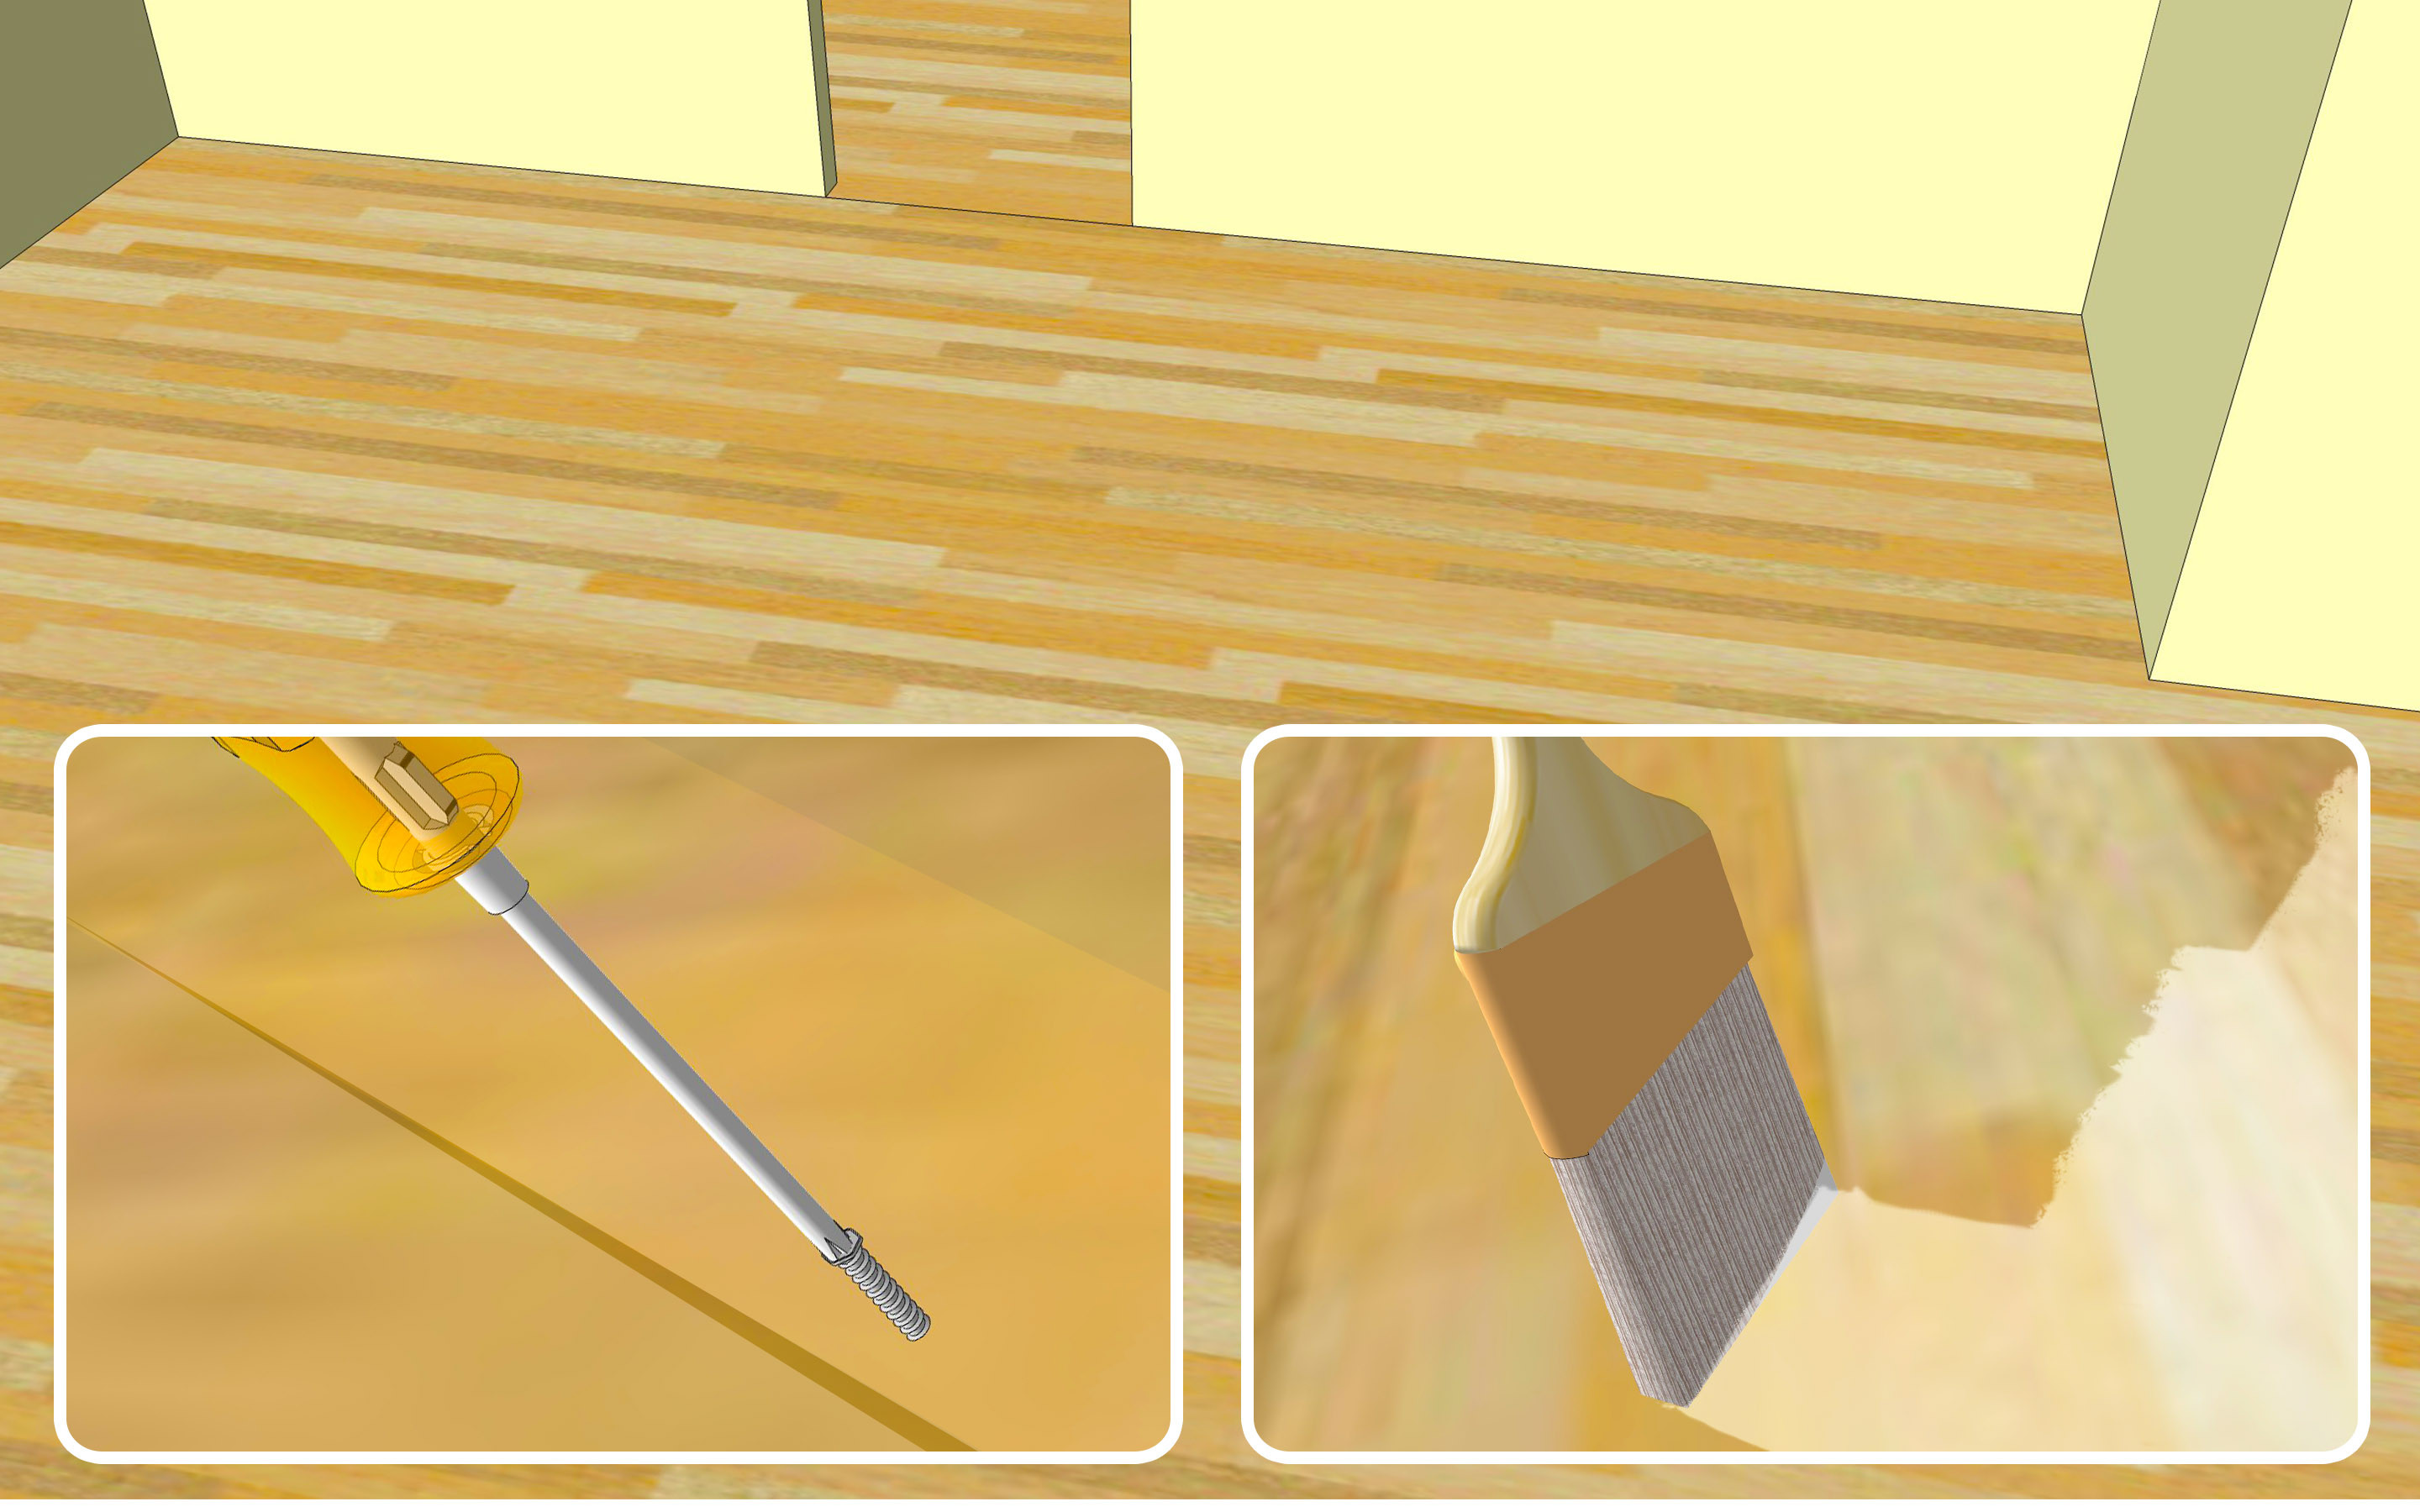 14 Famous How Much Should It Cost to Install Hardwood Floors 2021 free download how much should it cost to install hardwood floors of how to take out carpet 13 steps with pictures wikihow pertaining to take out carpet step 13 version 2